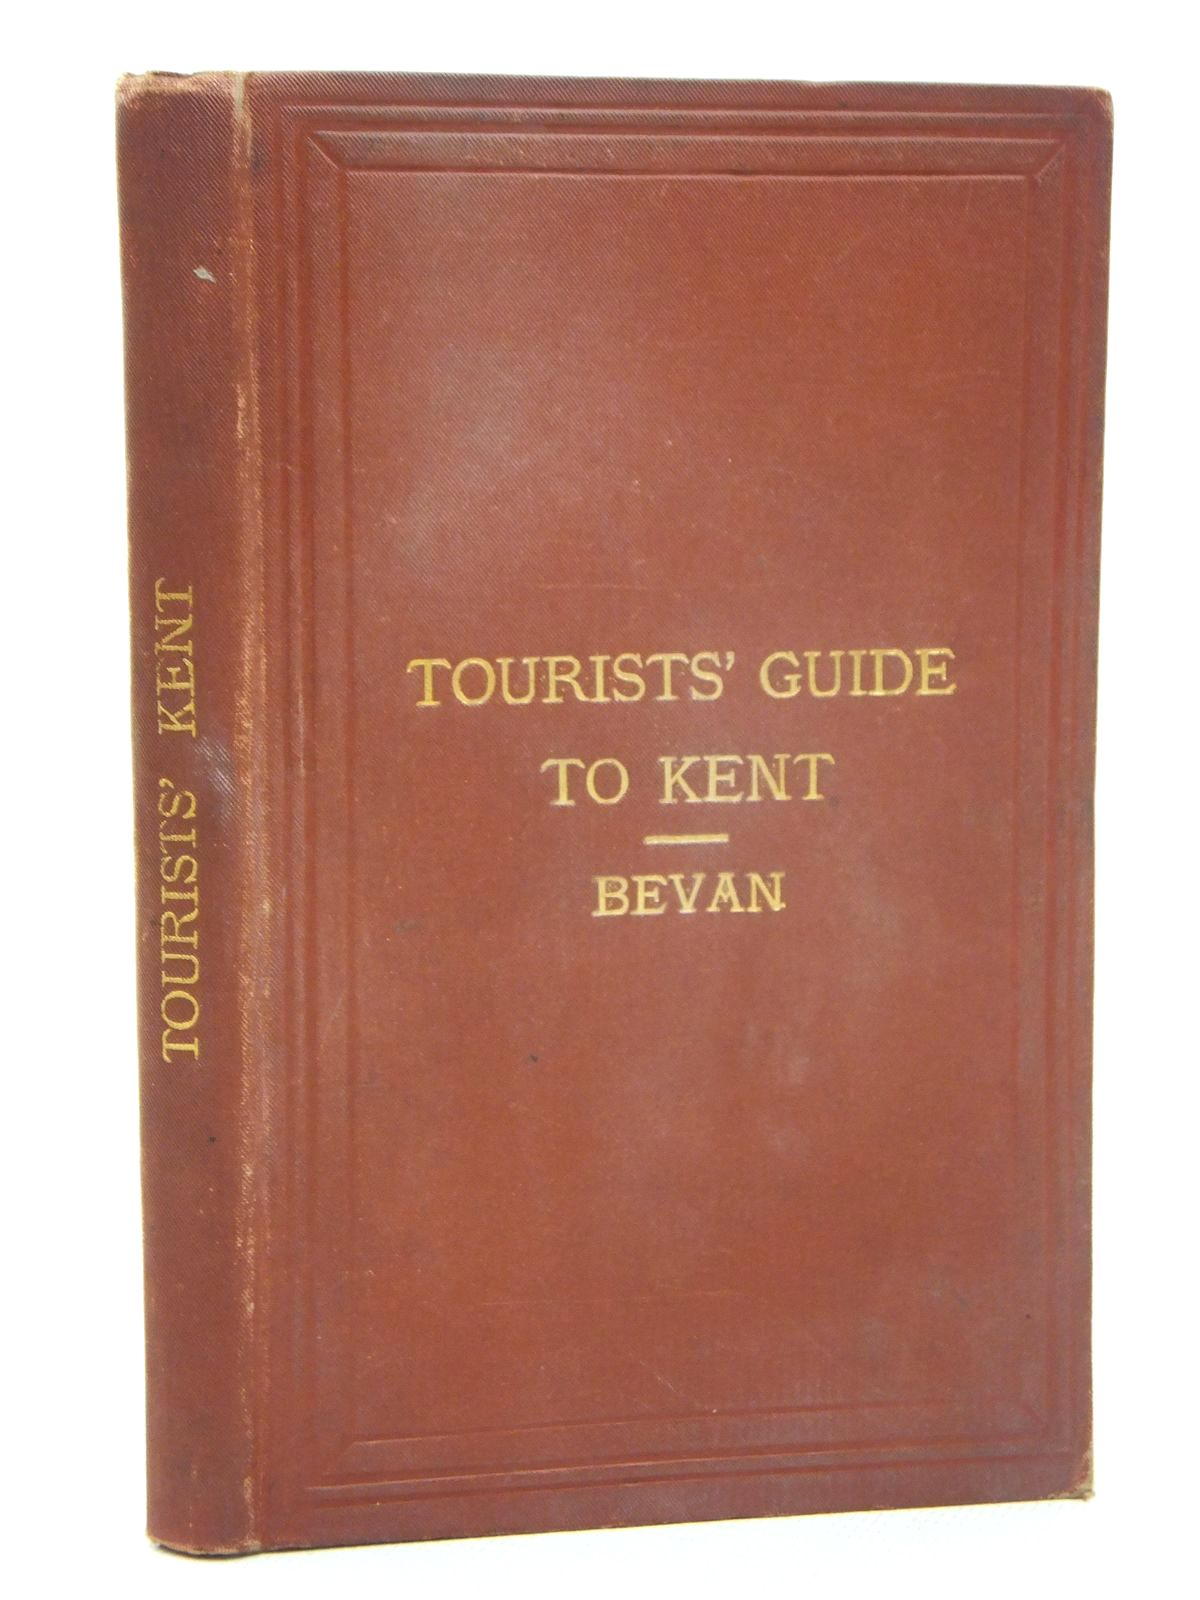 Photo of HANDBOOK TO THE COUNTY OF KENT (TOURISTS' GUIDE) written by Bevan, G. Phillips published by Edward Stanford (STOCK CODE: 1609471)  for sale by Stella & Rose's Books